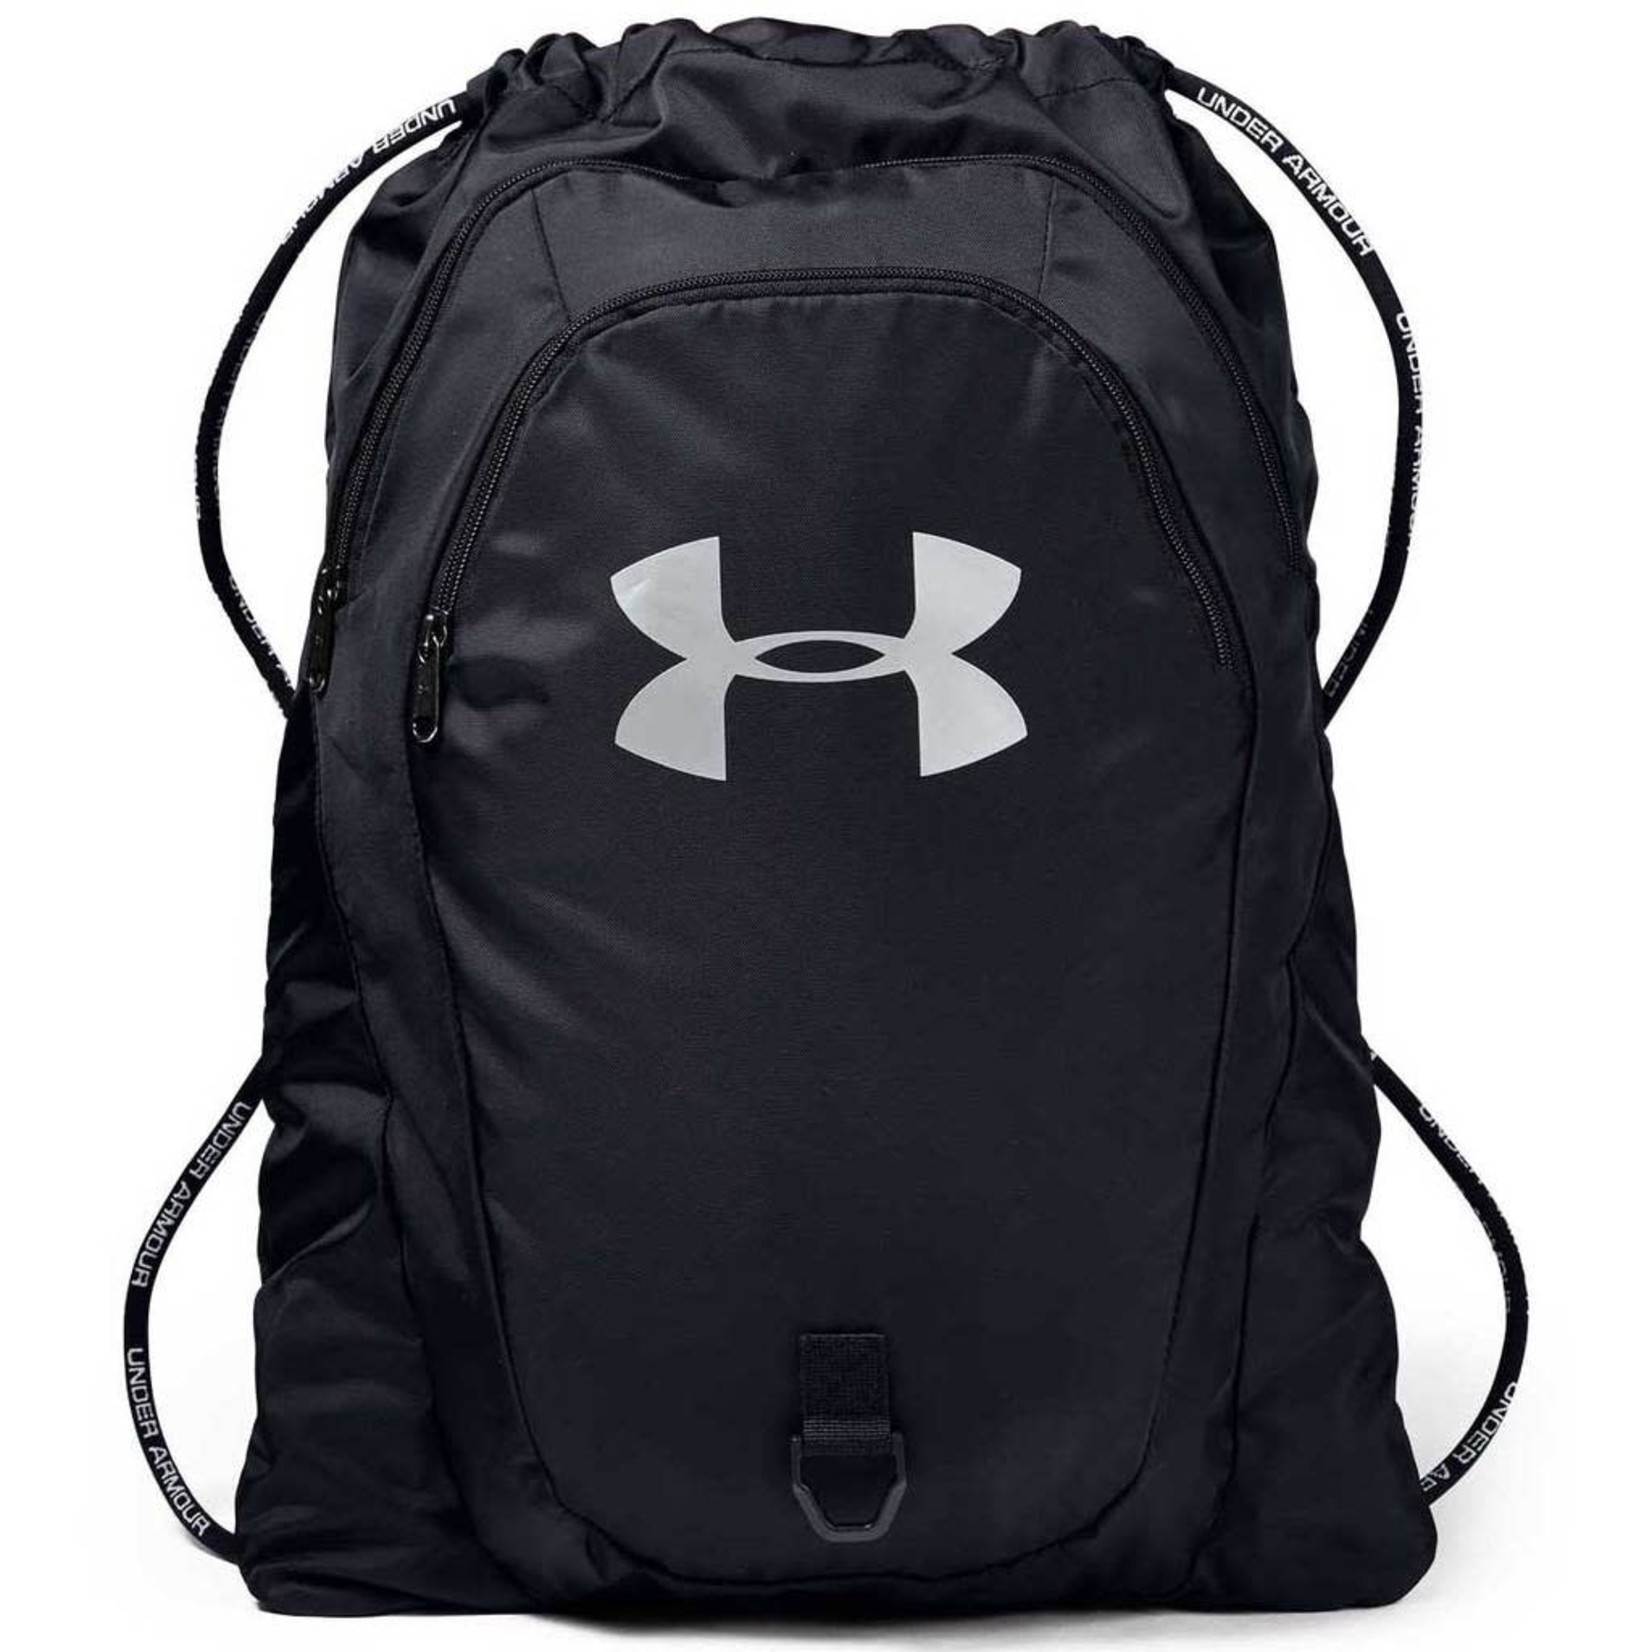 Under Armour Under Armour Sackpack, Undeniable 2.0